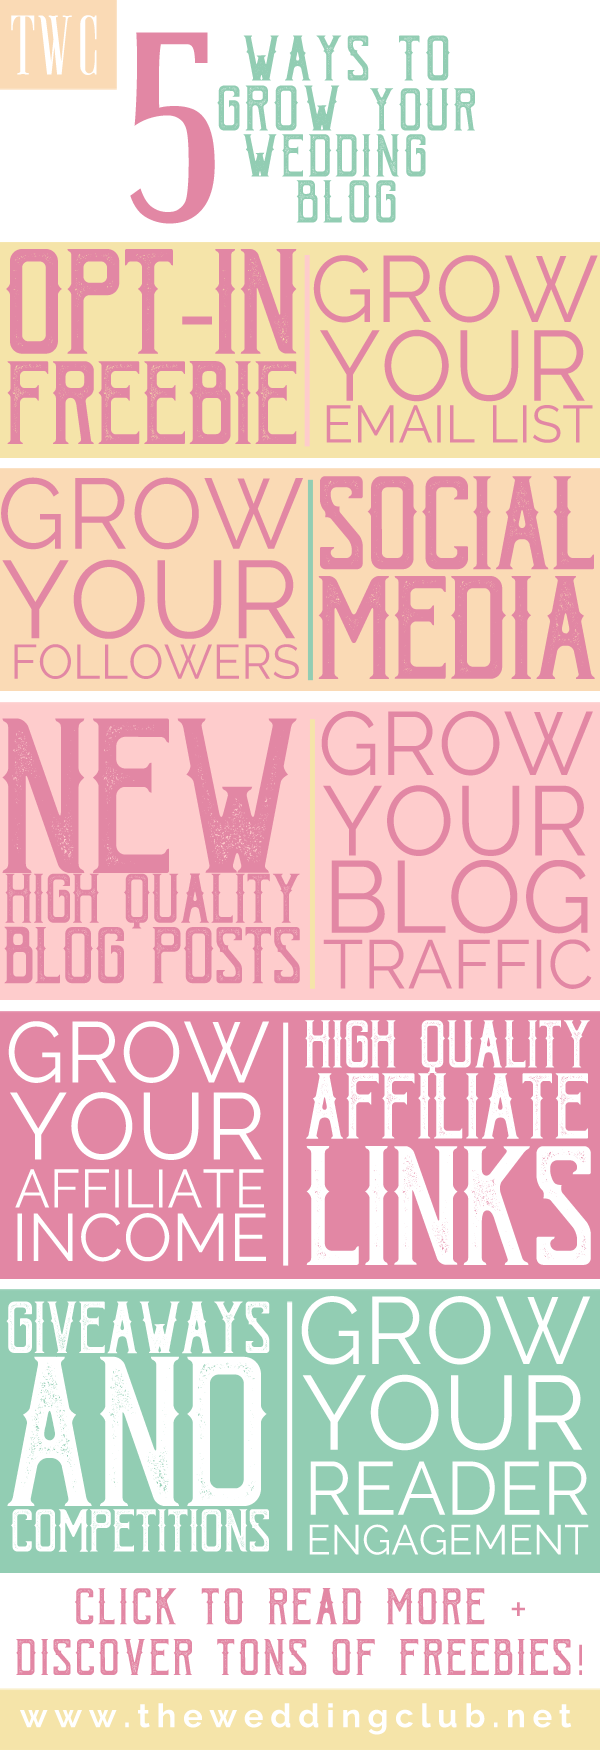 5 ways to grow your blog